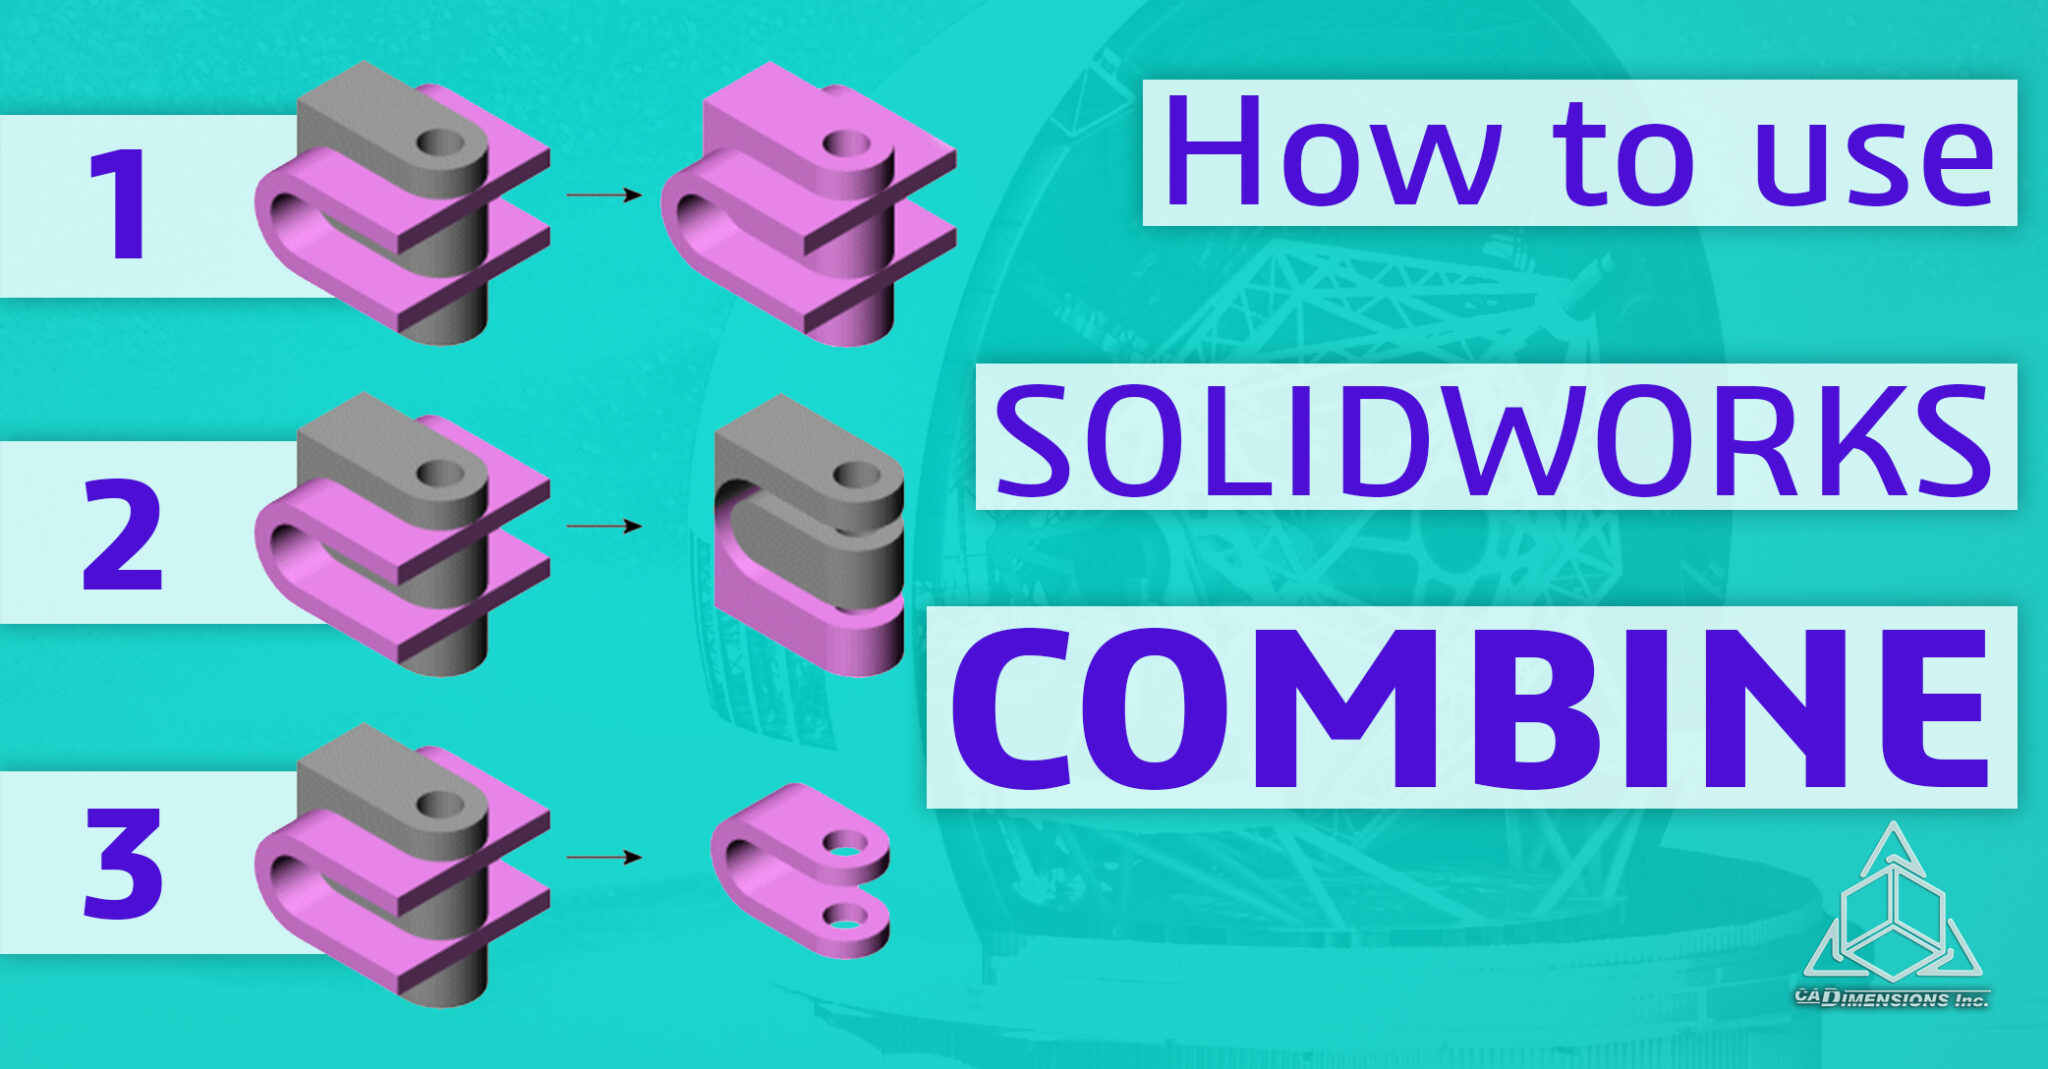 How to use SOLIDWORKS Combine CADimensions